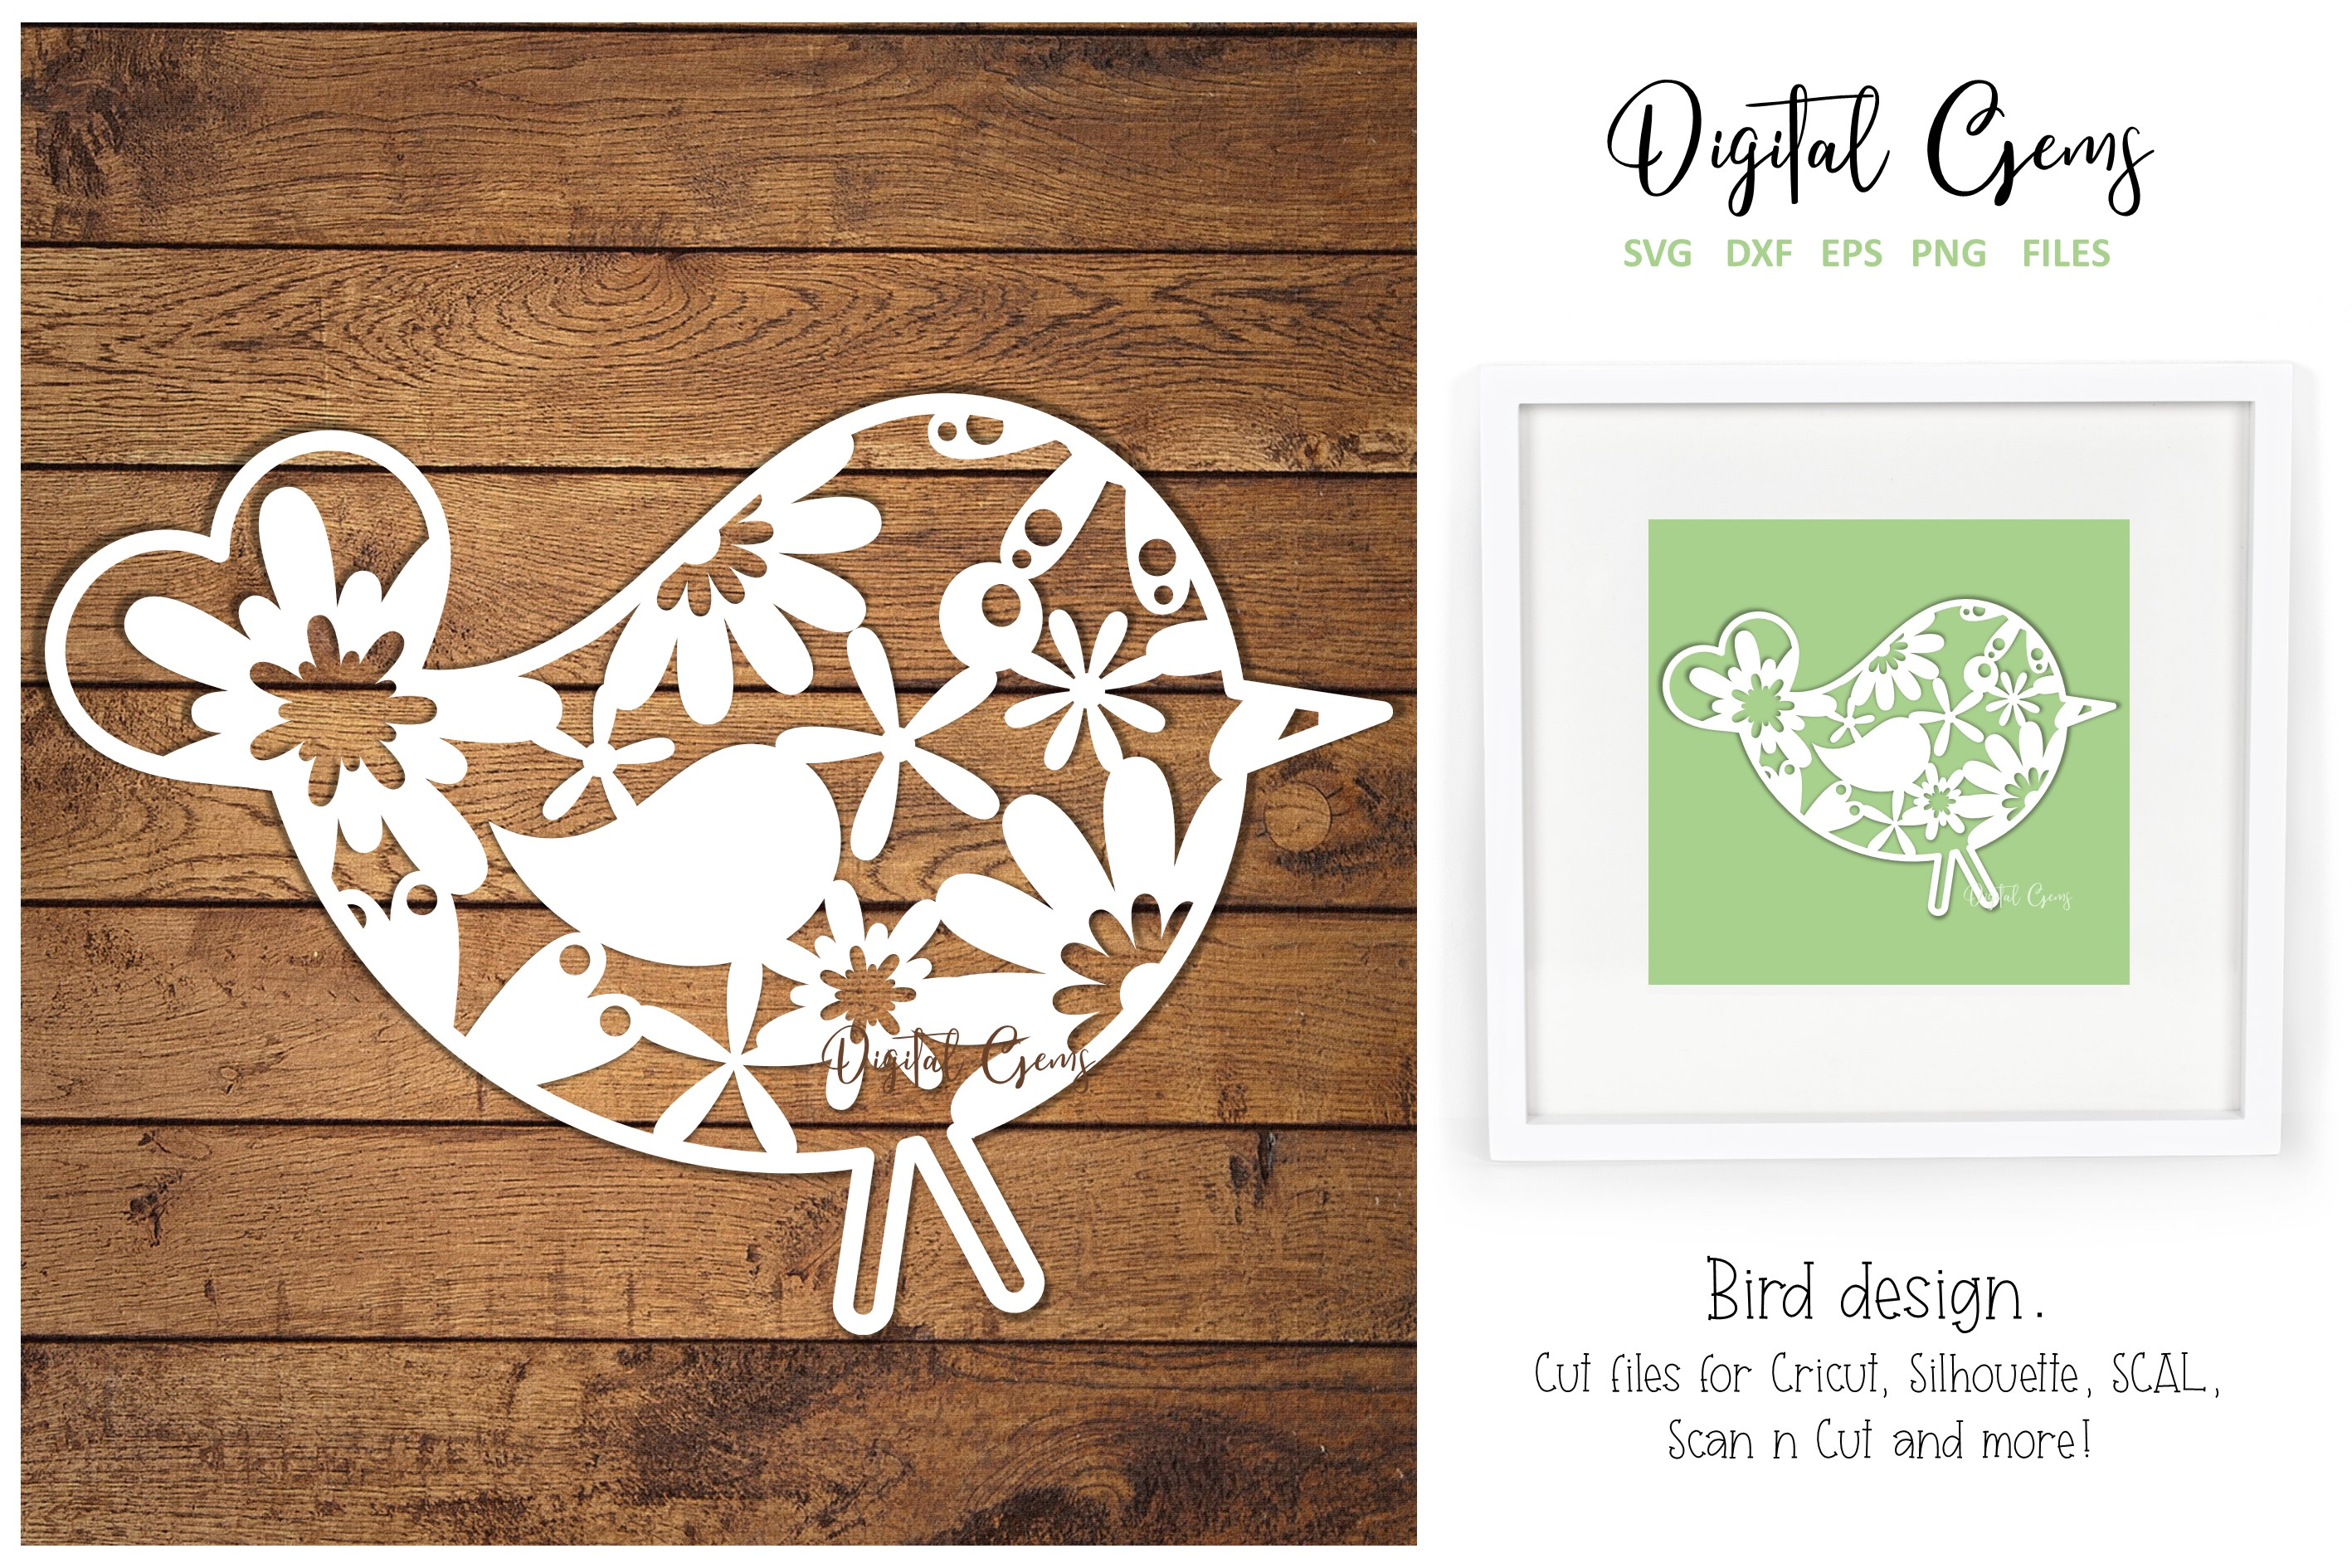 Download Free Bird Paper Cut Design Graphic By Digital Gems Creative Fabrica for Cricut Explore, Silhouette and other cutting machines.